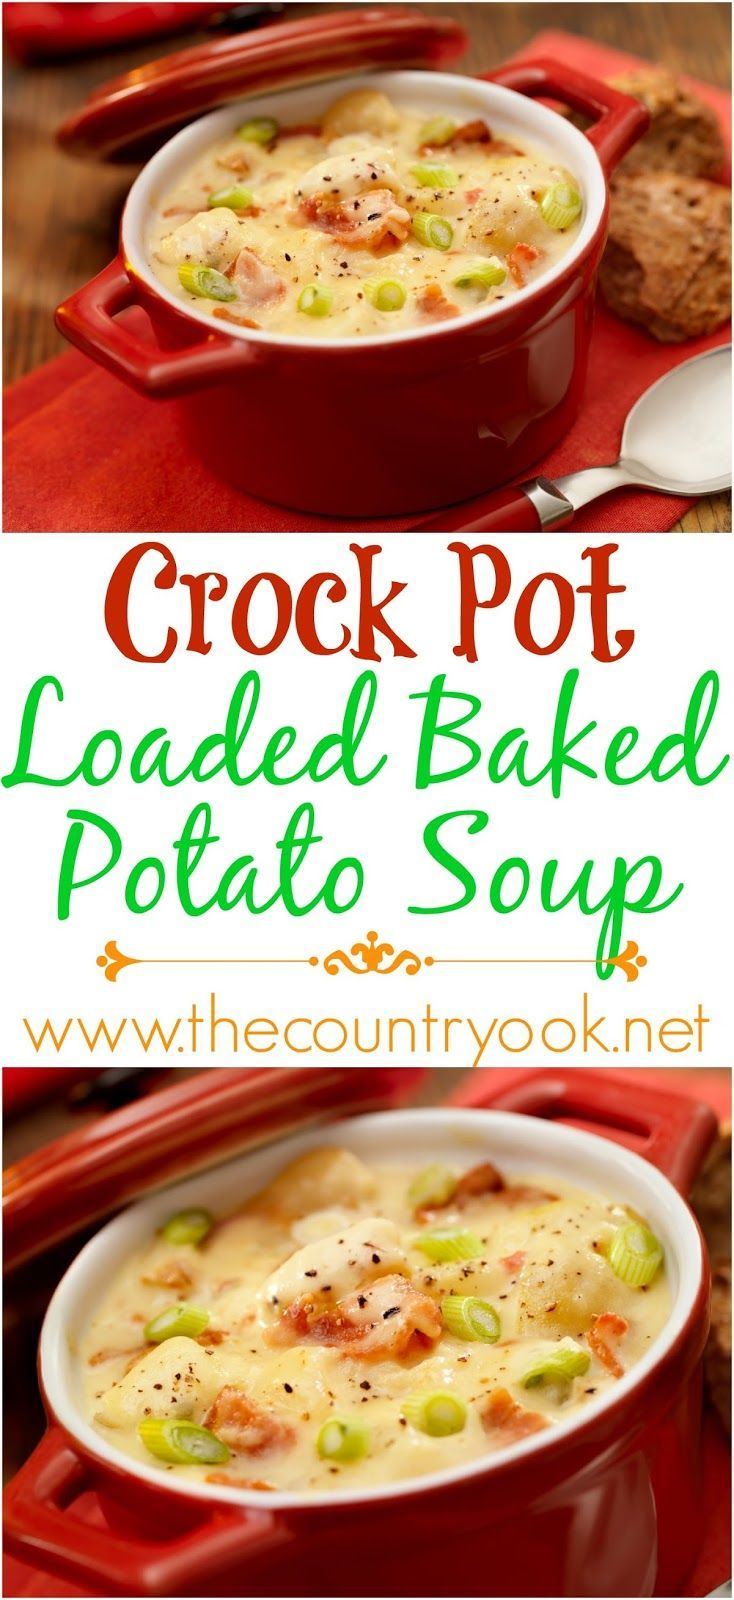 Crock Pot Loaded Baked Potato Soup recipe from The Country Cook. A hearty, stick-to-your-ribs soup. We love it topped with bacon and cheese and green onions.